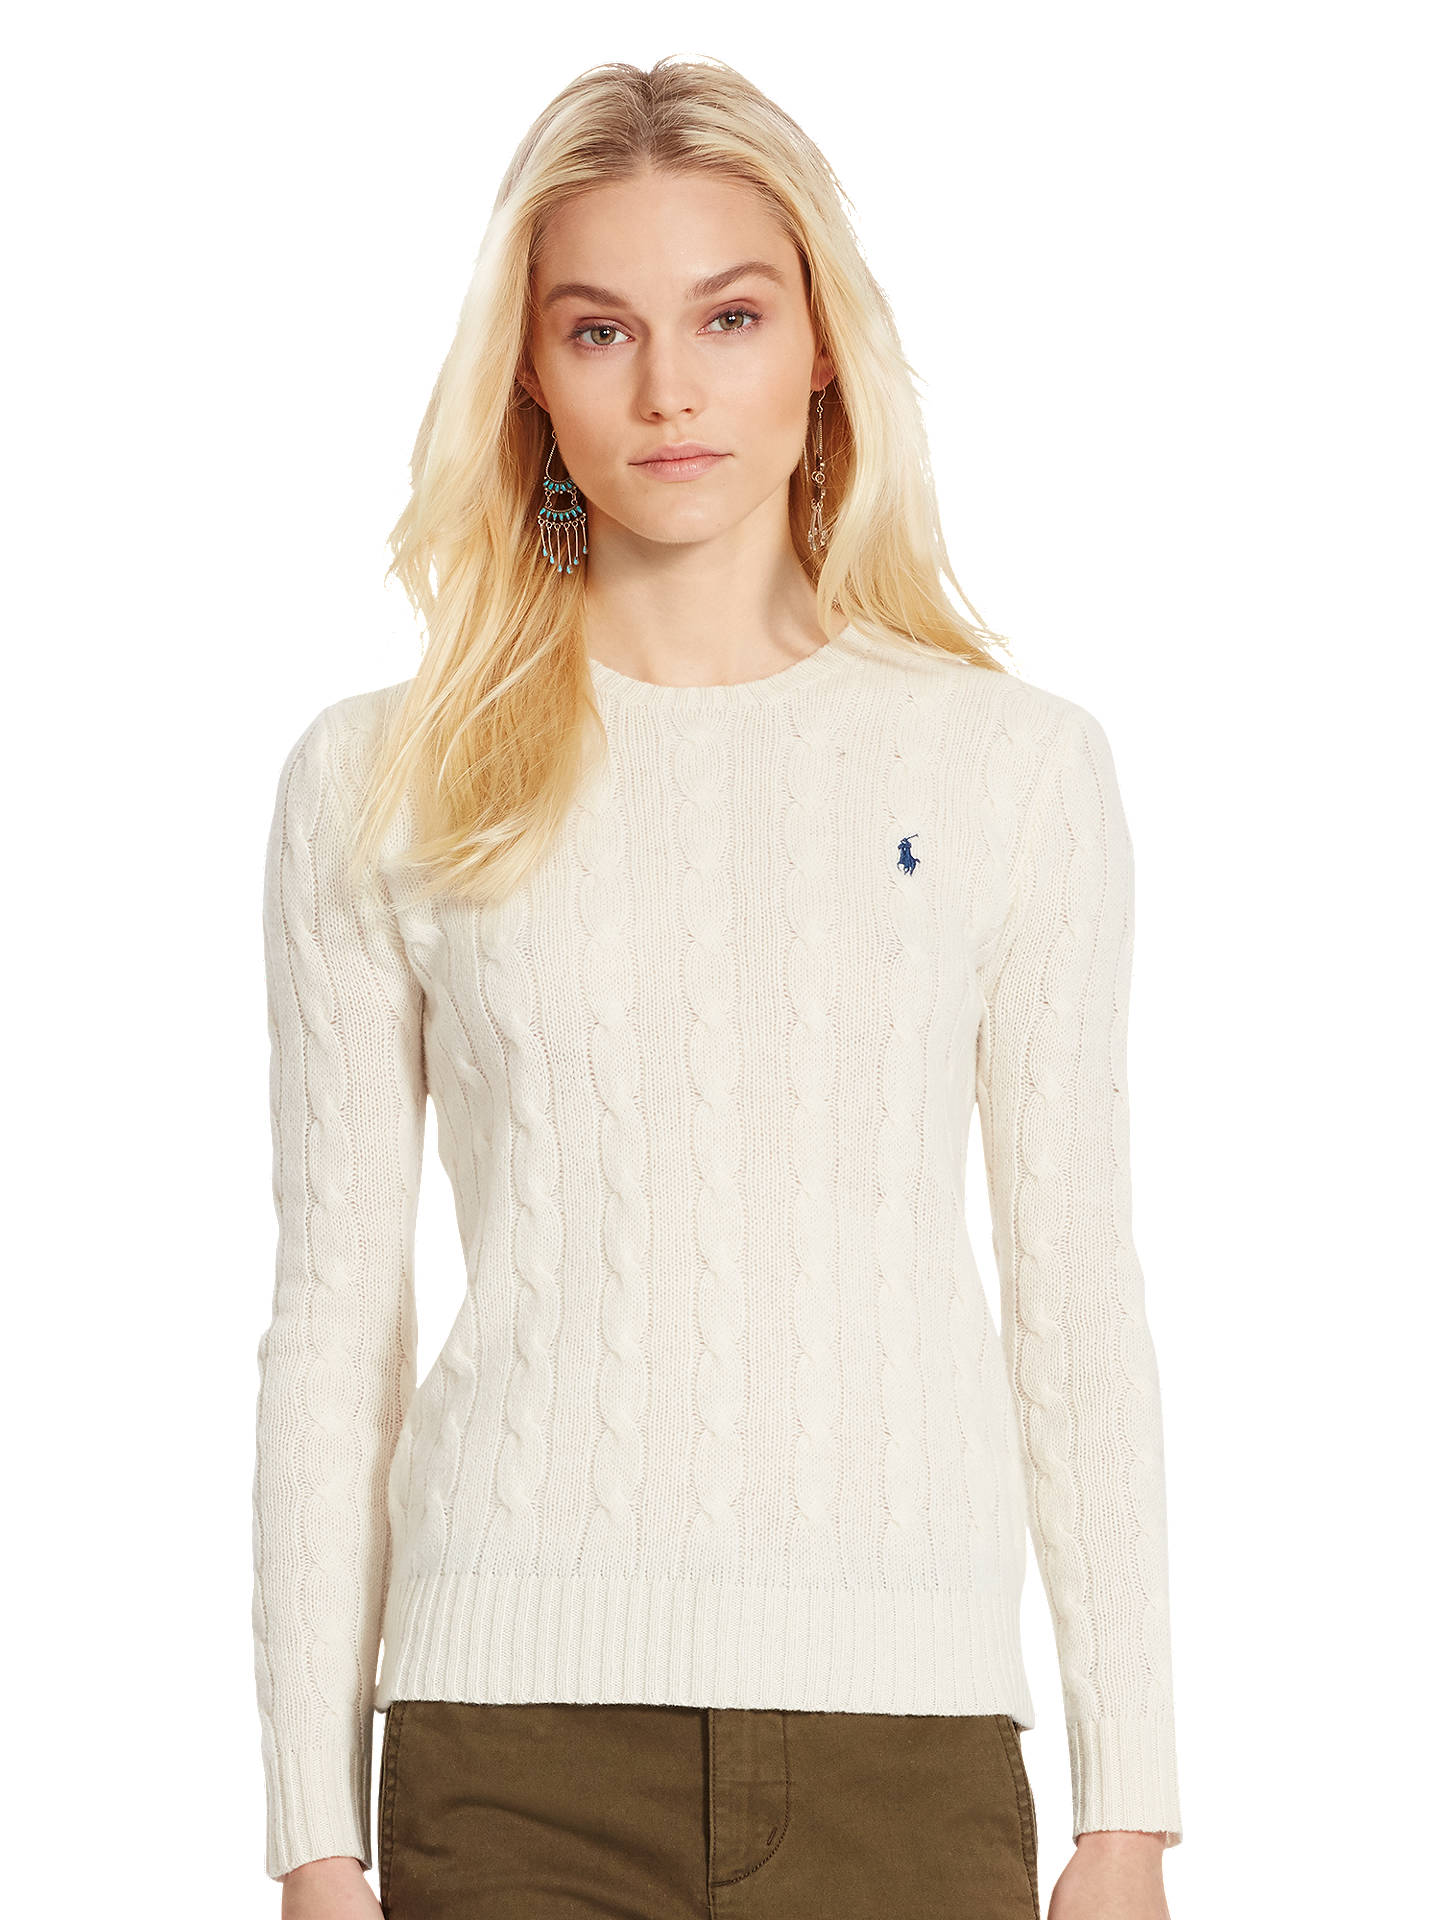 2d3117357 Buy Polo Ralph Lauren Julianna Cable Knit Jumper